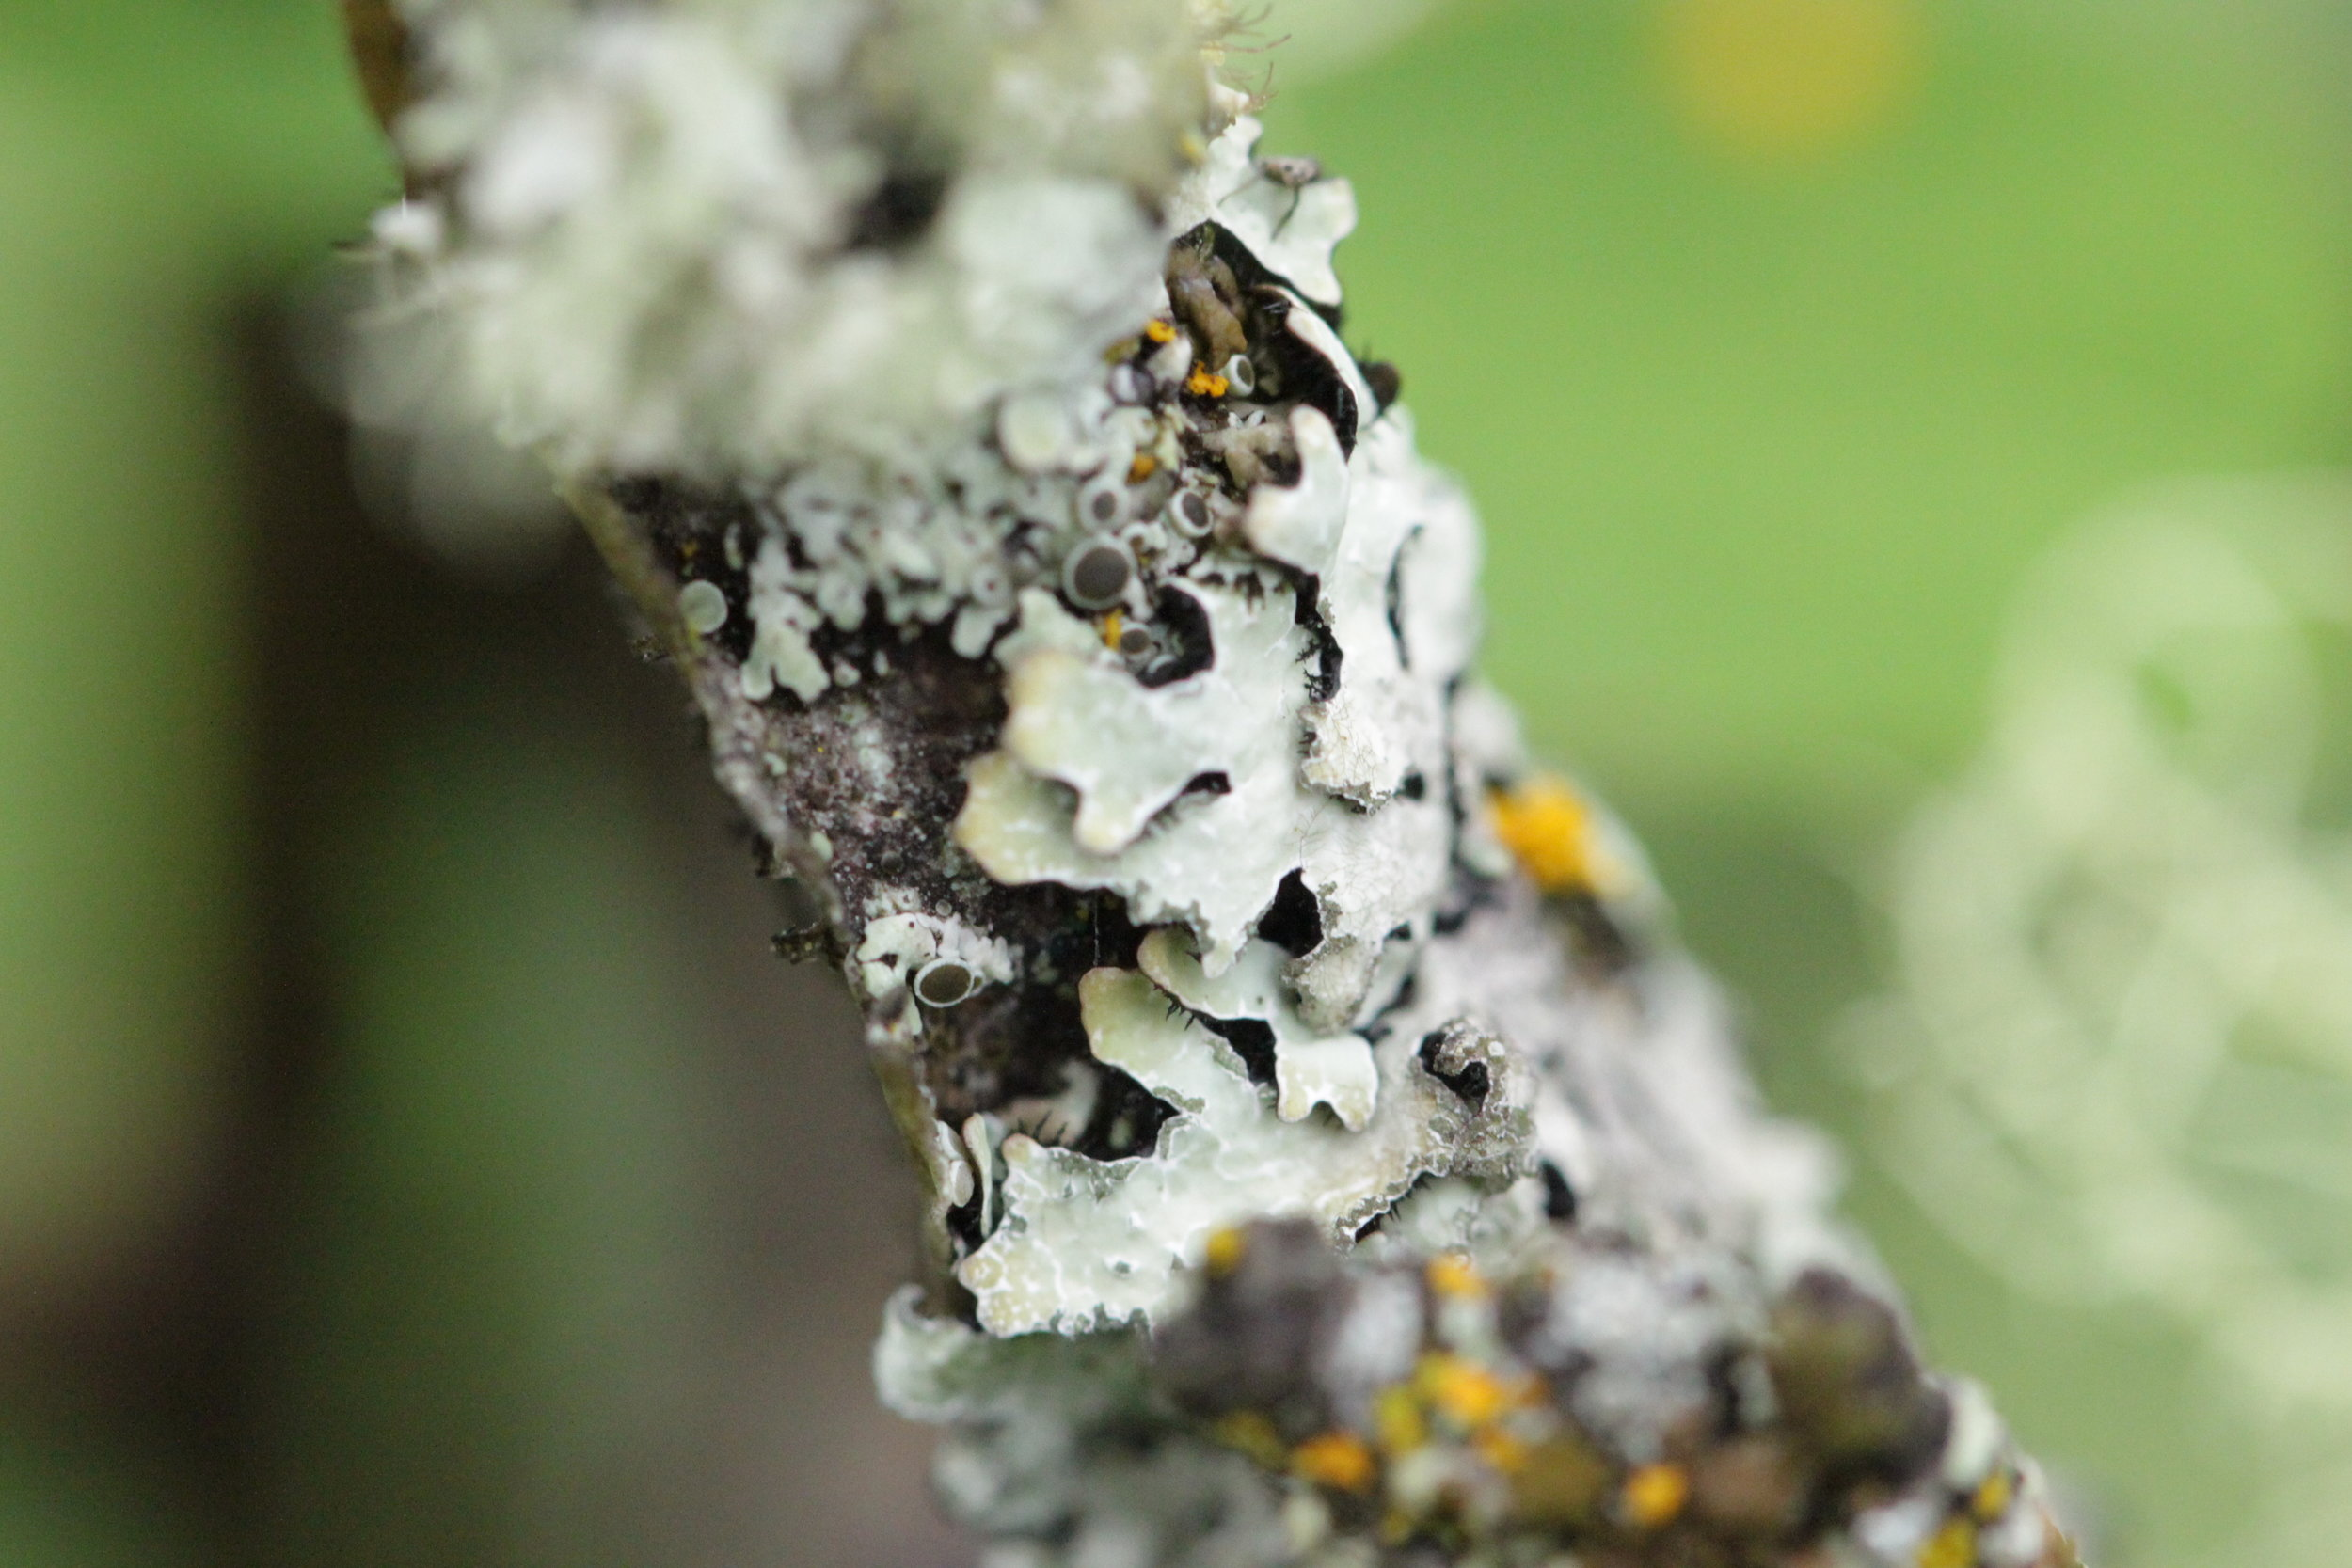 One of the species of Shield lichens growing on a twig.